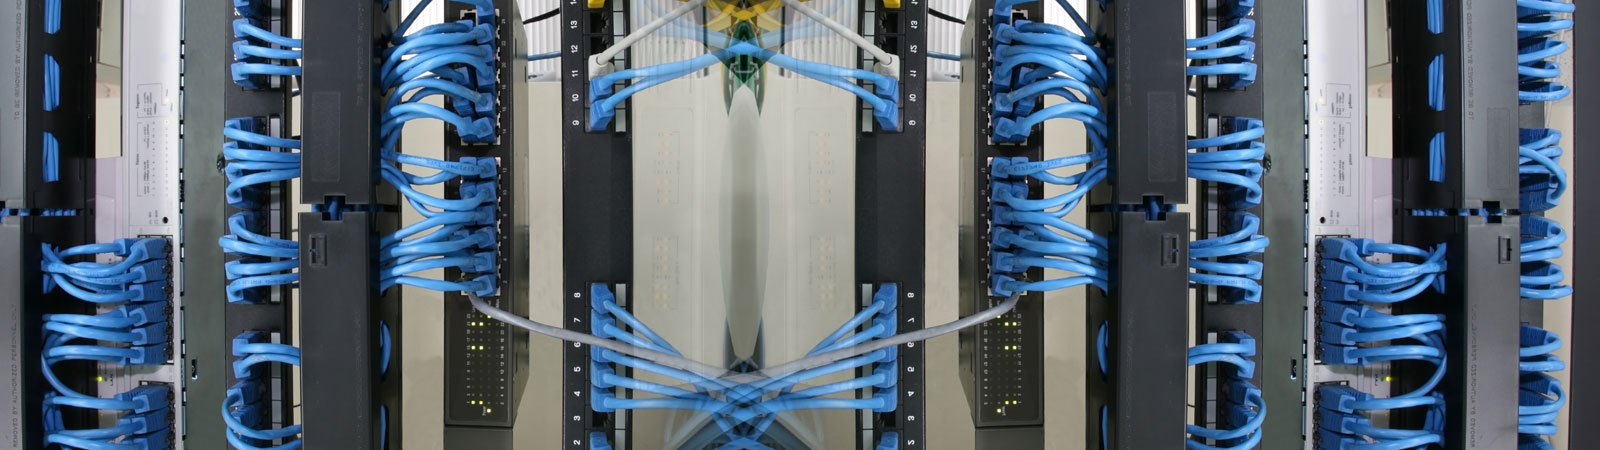 Structured Cabling Calgary